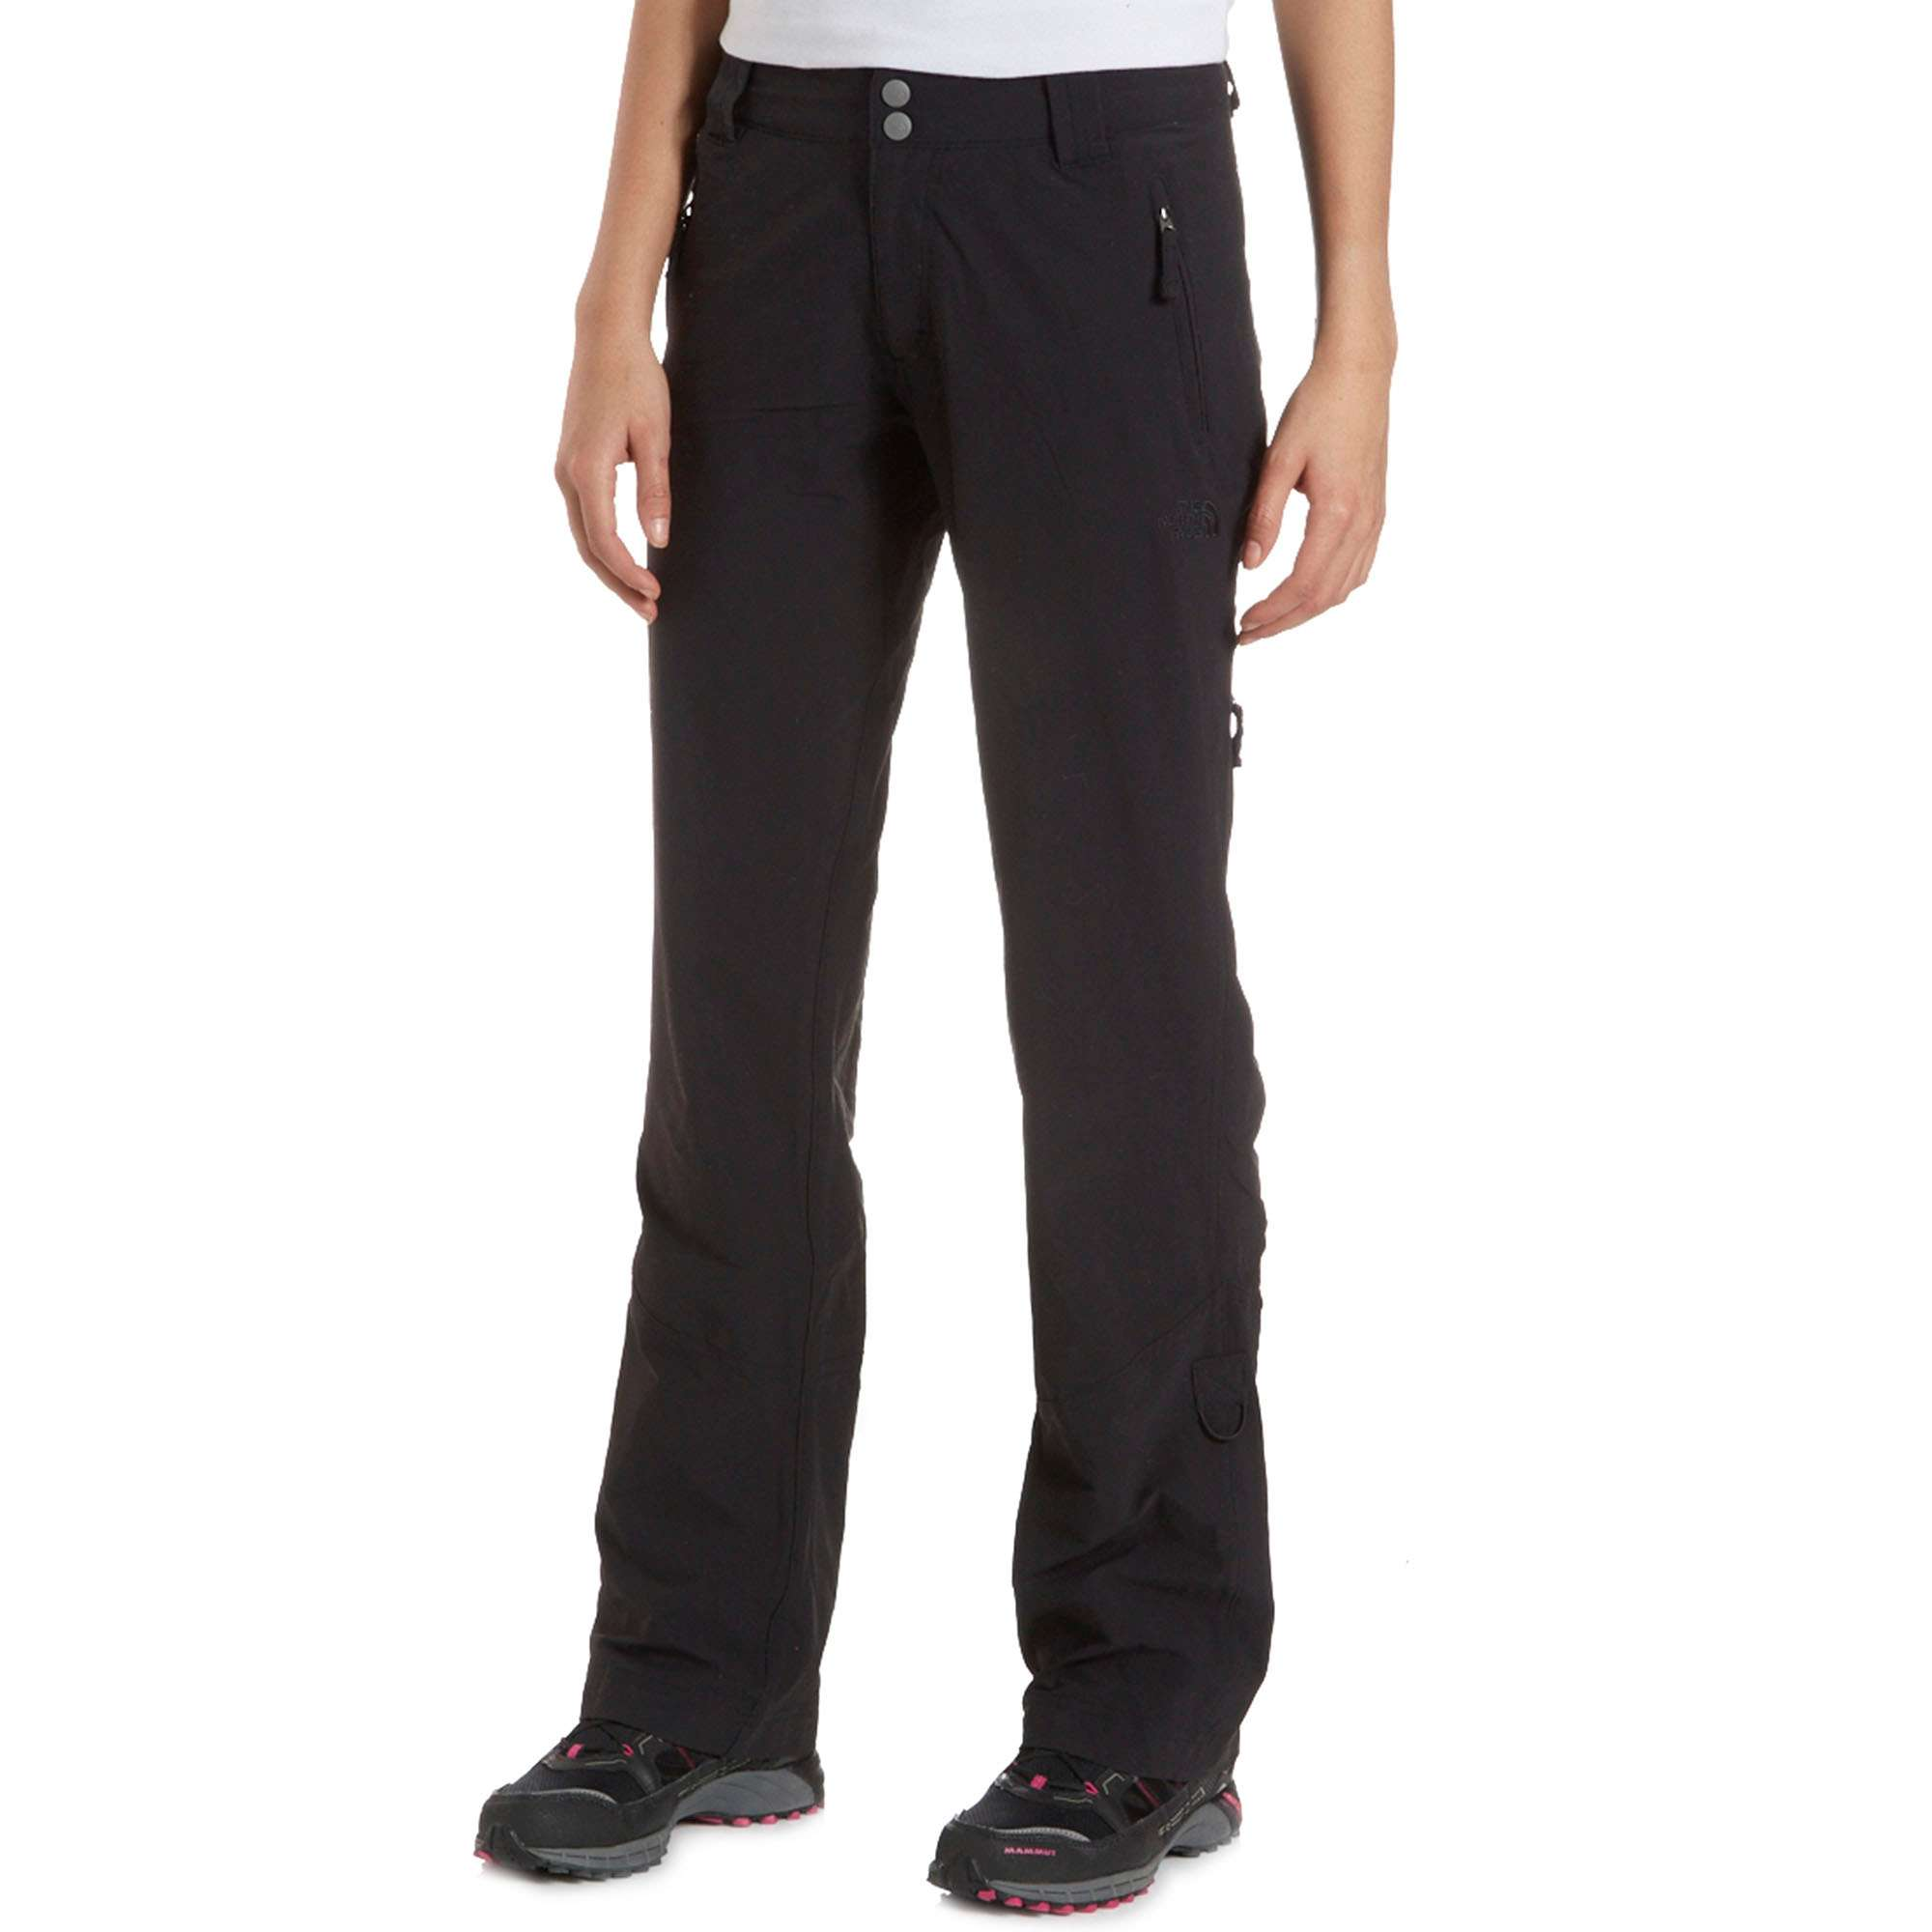 THE NORTH FACE Women's Trekker Trousers